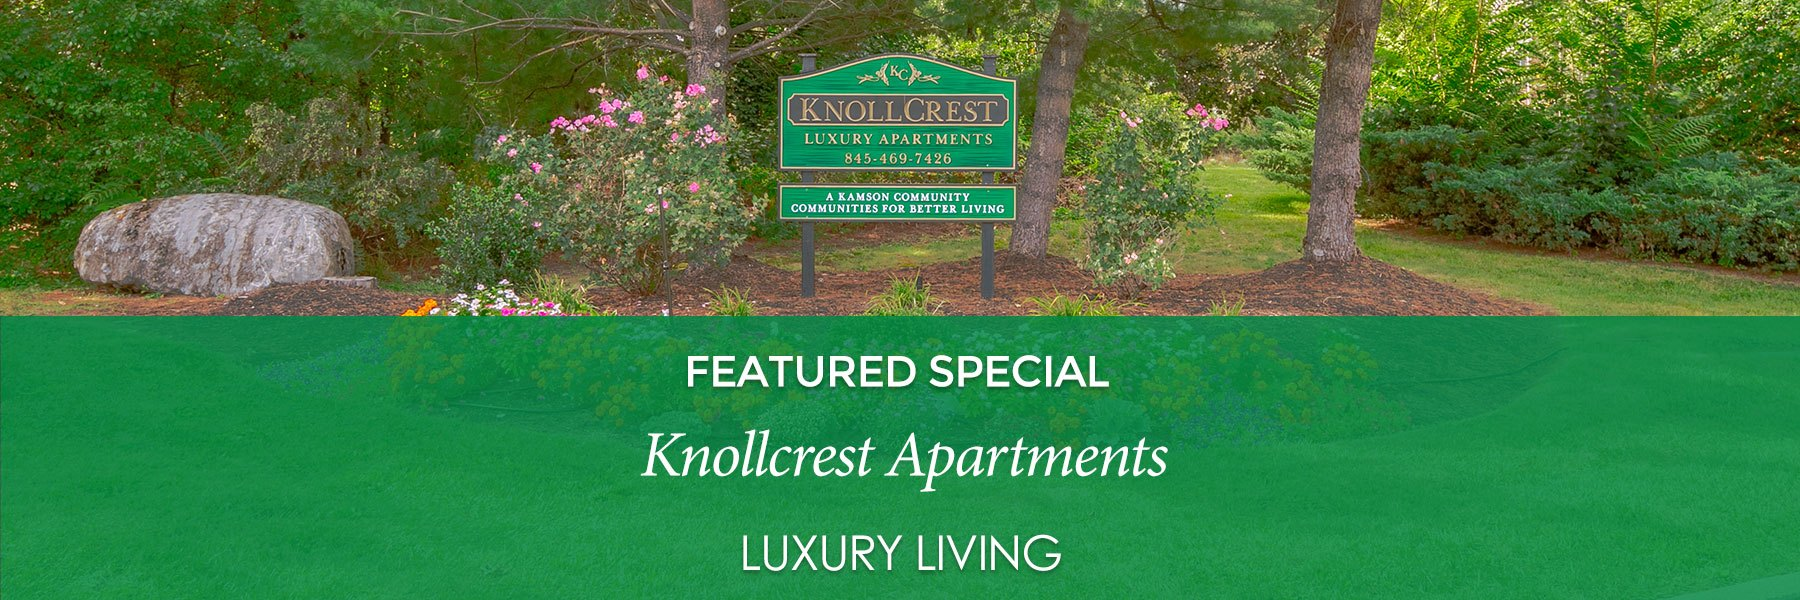 Knollcrest Village Apartments For Rent in Chester, NY Specials